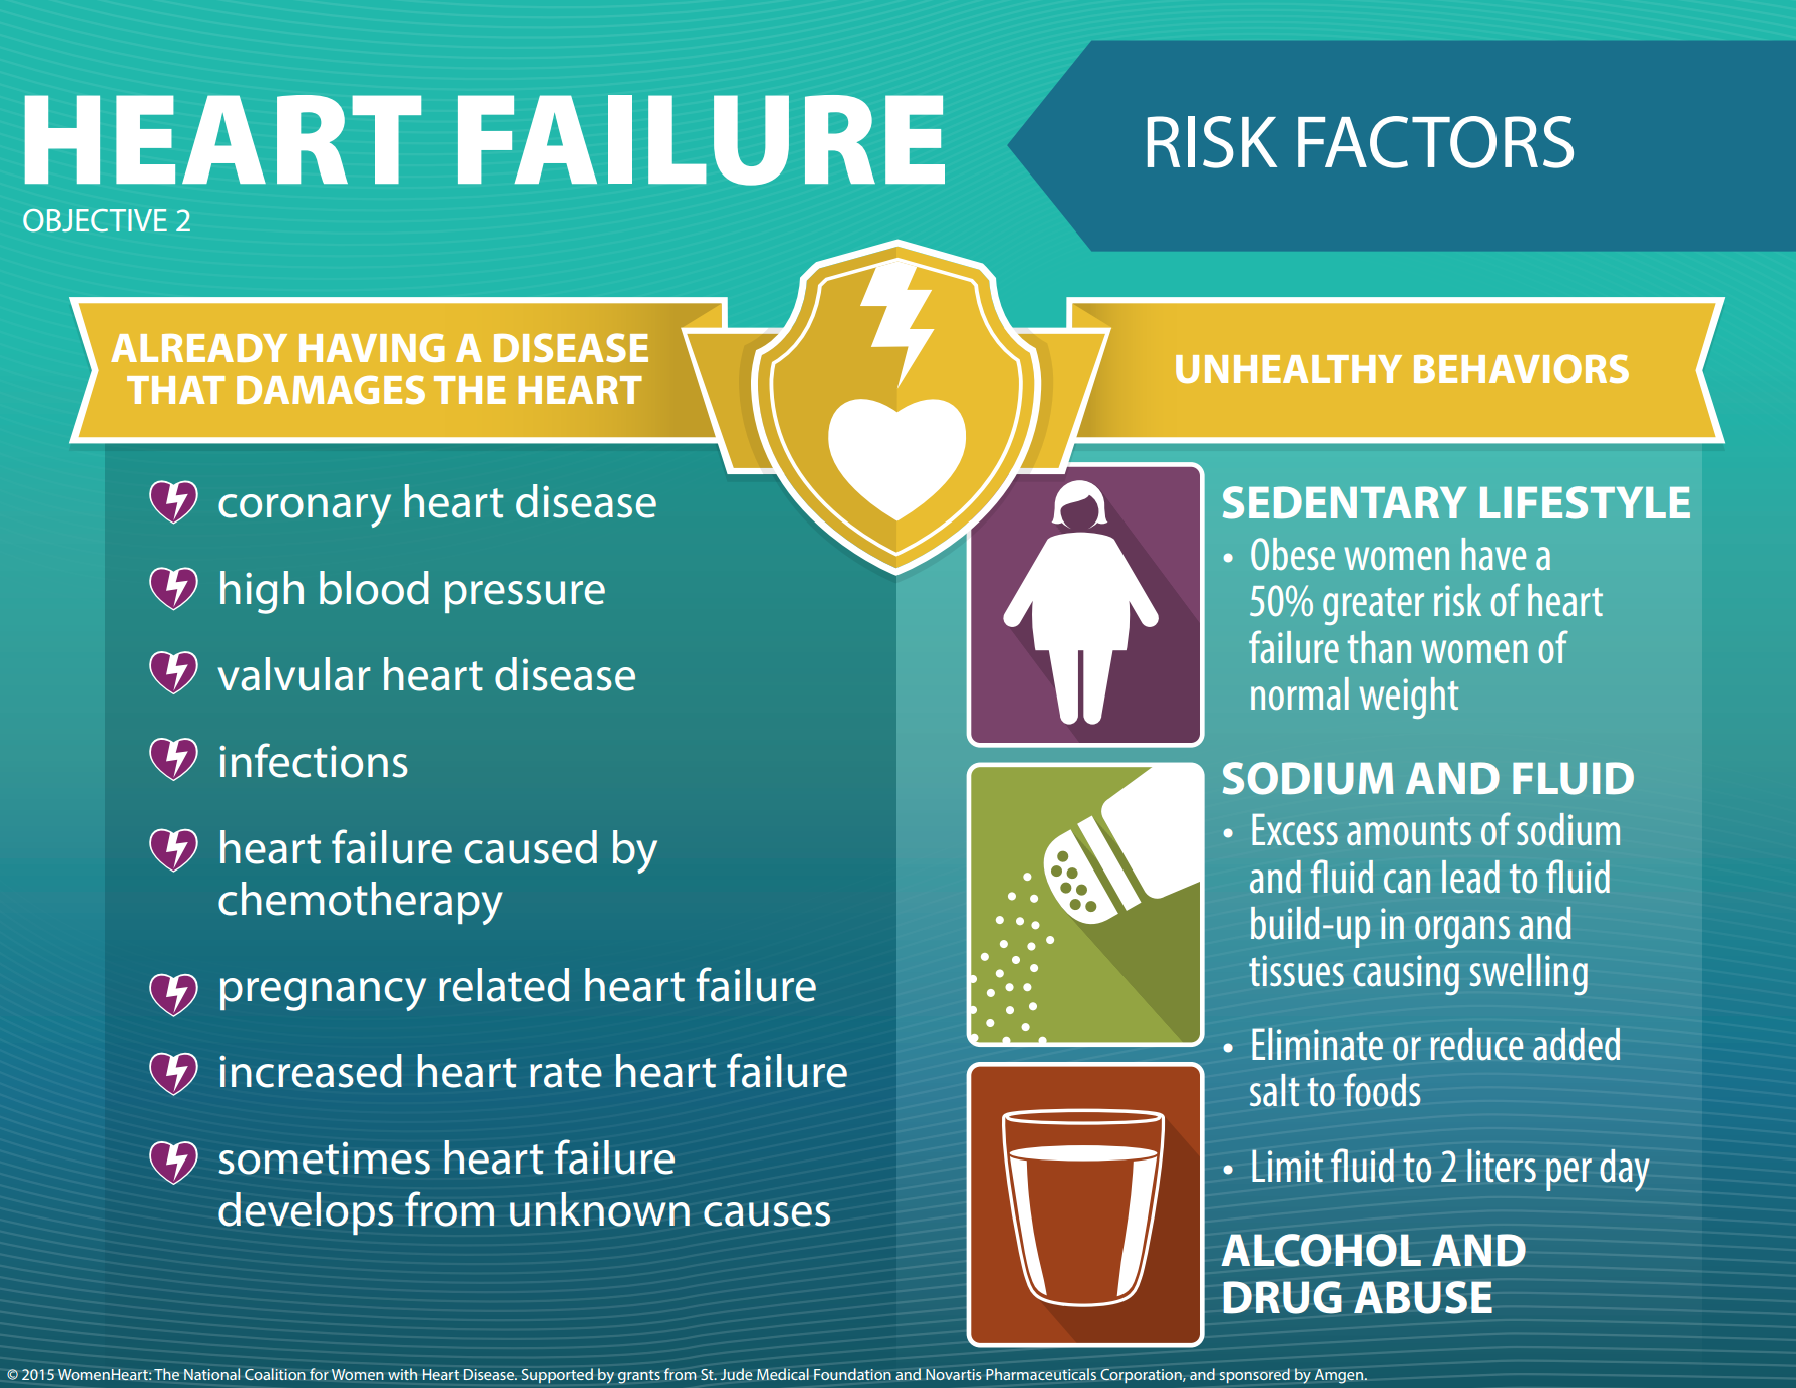 These are the risk factors that can lead to heart failure ...